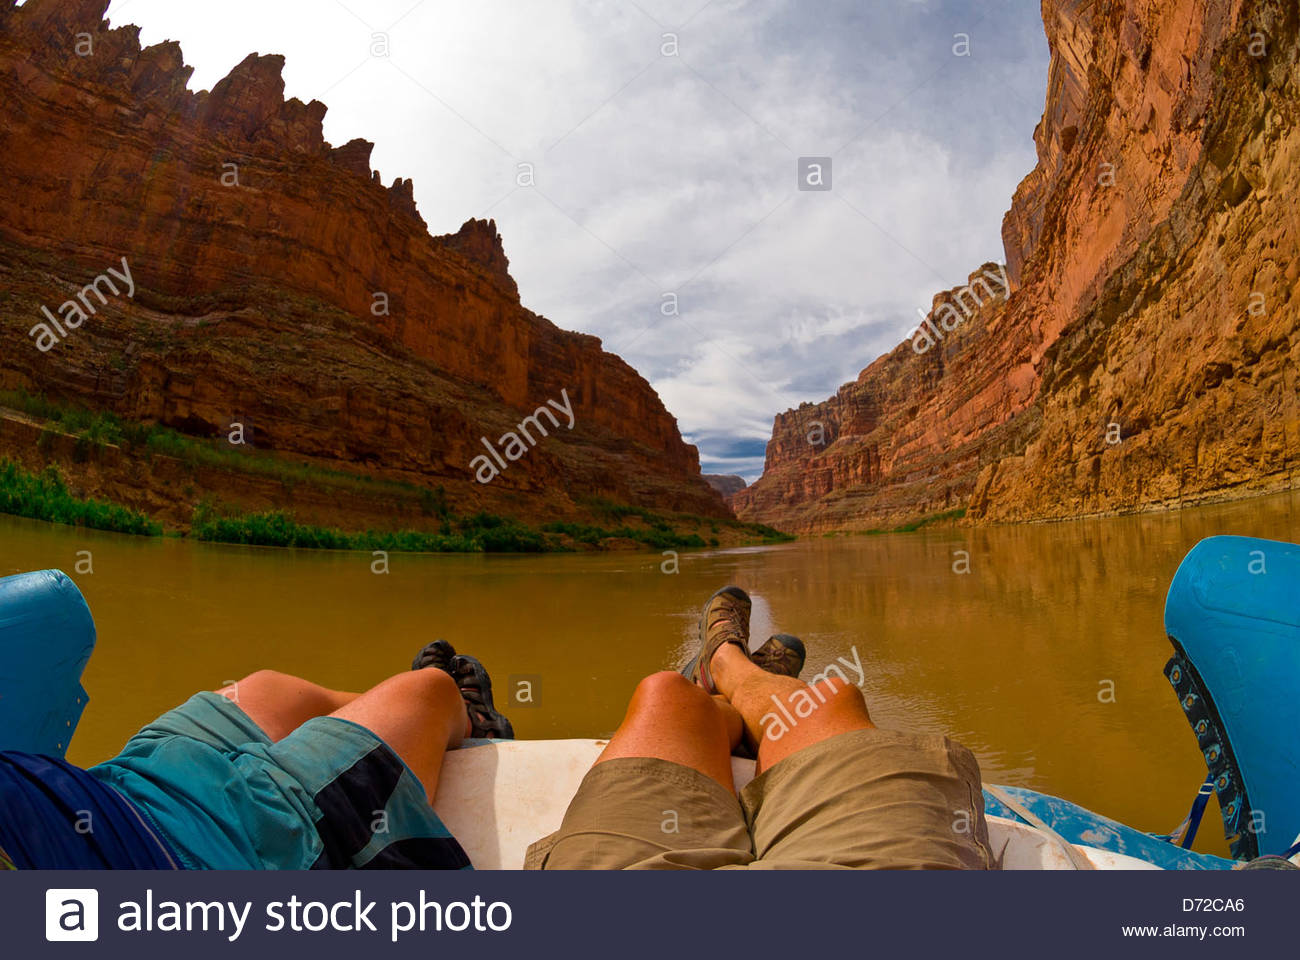 Cove Canyon del Fiume Colorado, Glen Canyon National Recreation Area, USA Utah Foto Stock